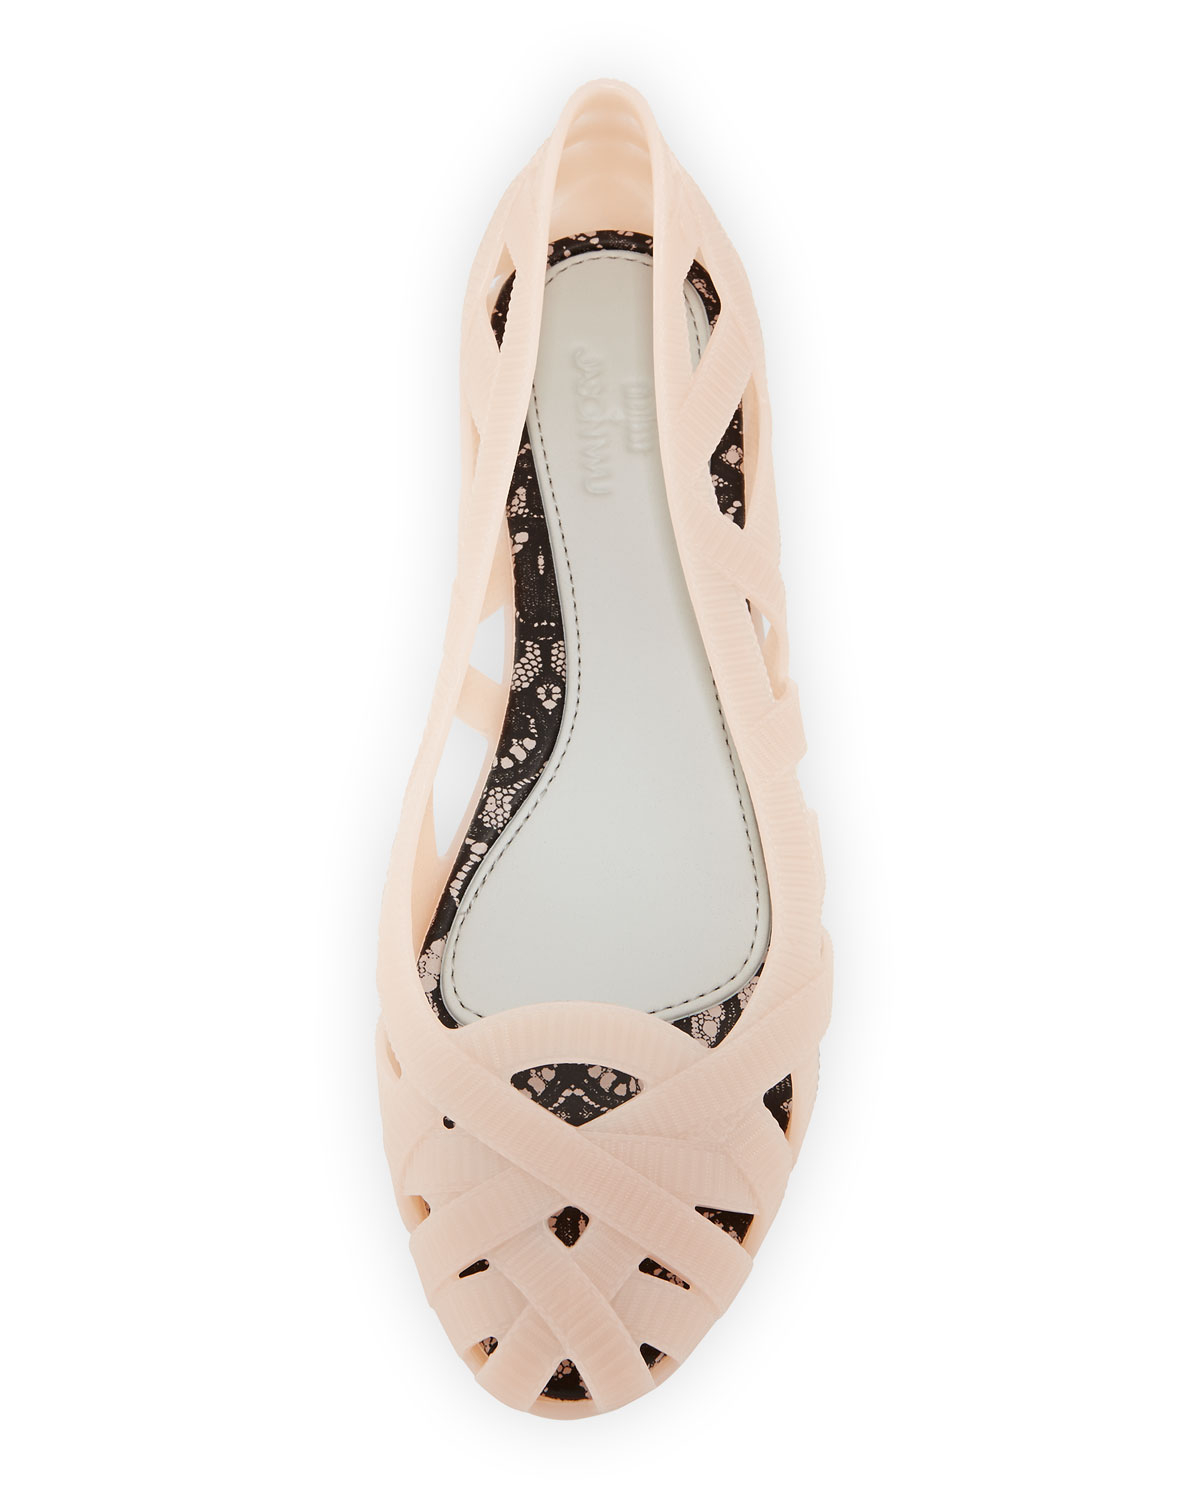 711e0a9c0a2 Lyst - Melissa Jean + Jason Wu Iii Cutout Jelly Flat in Natural